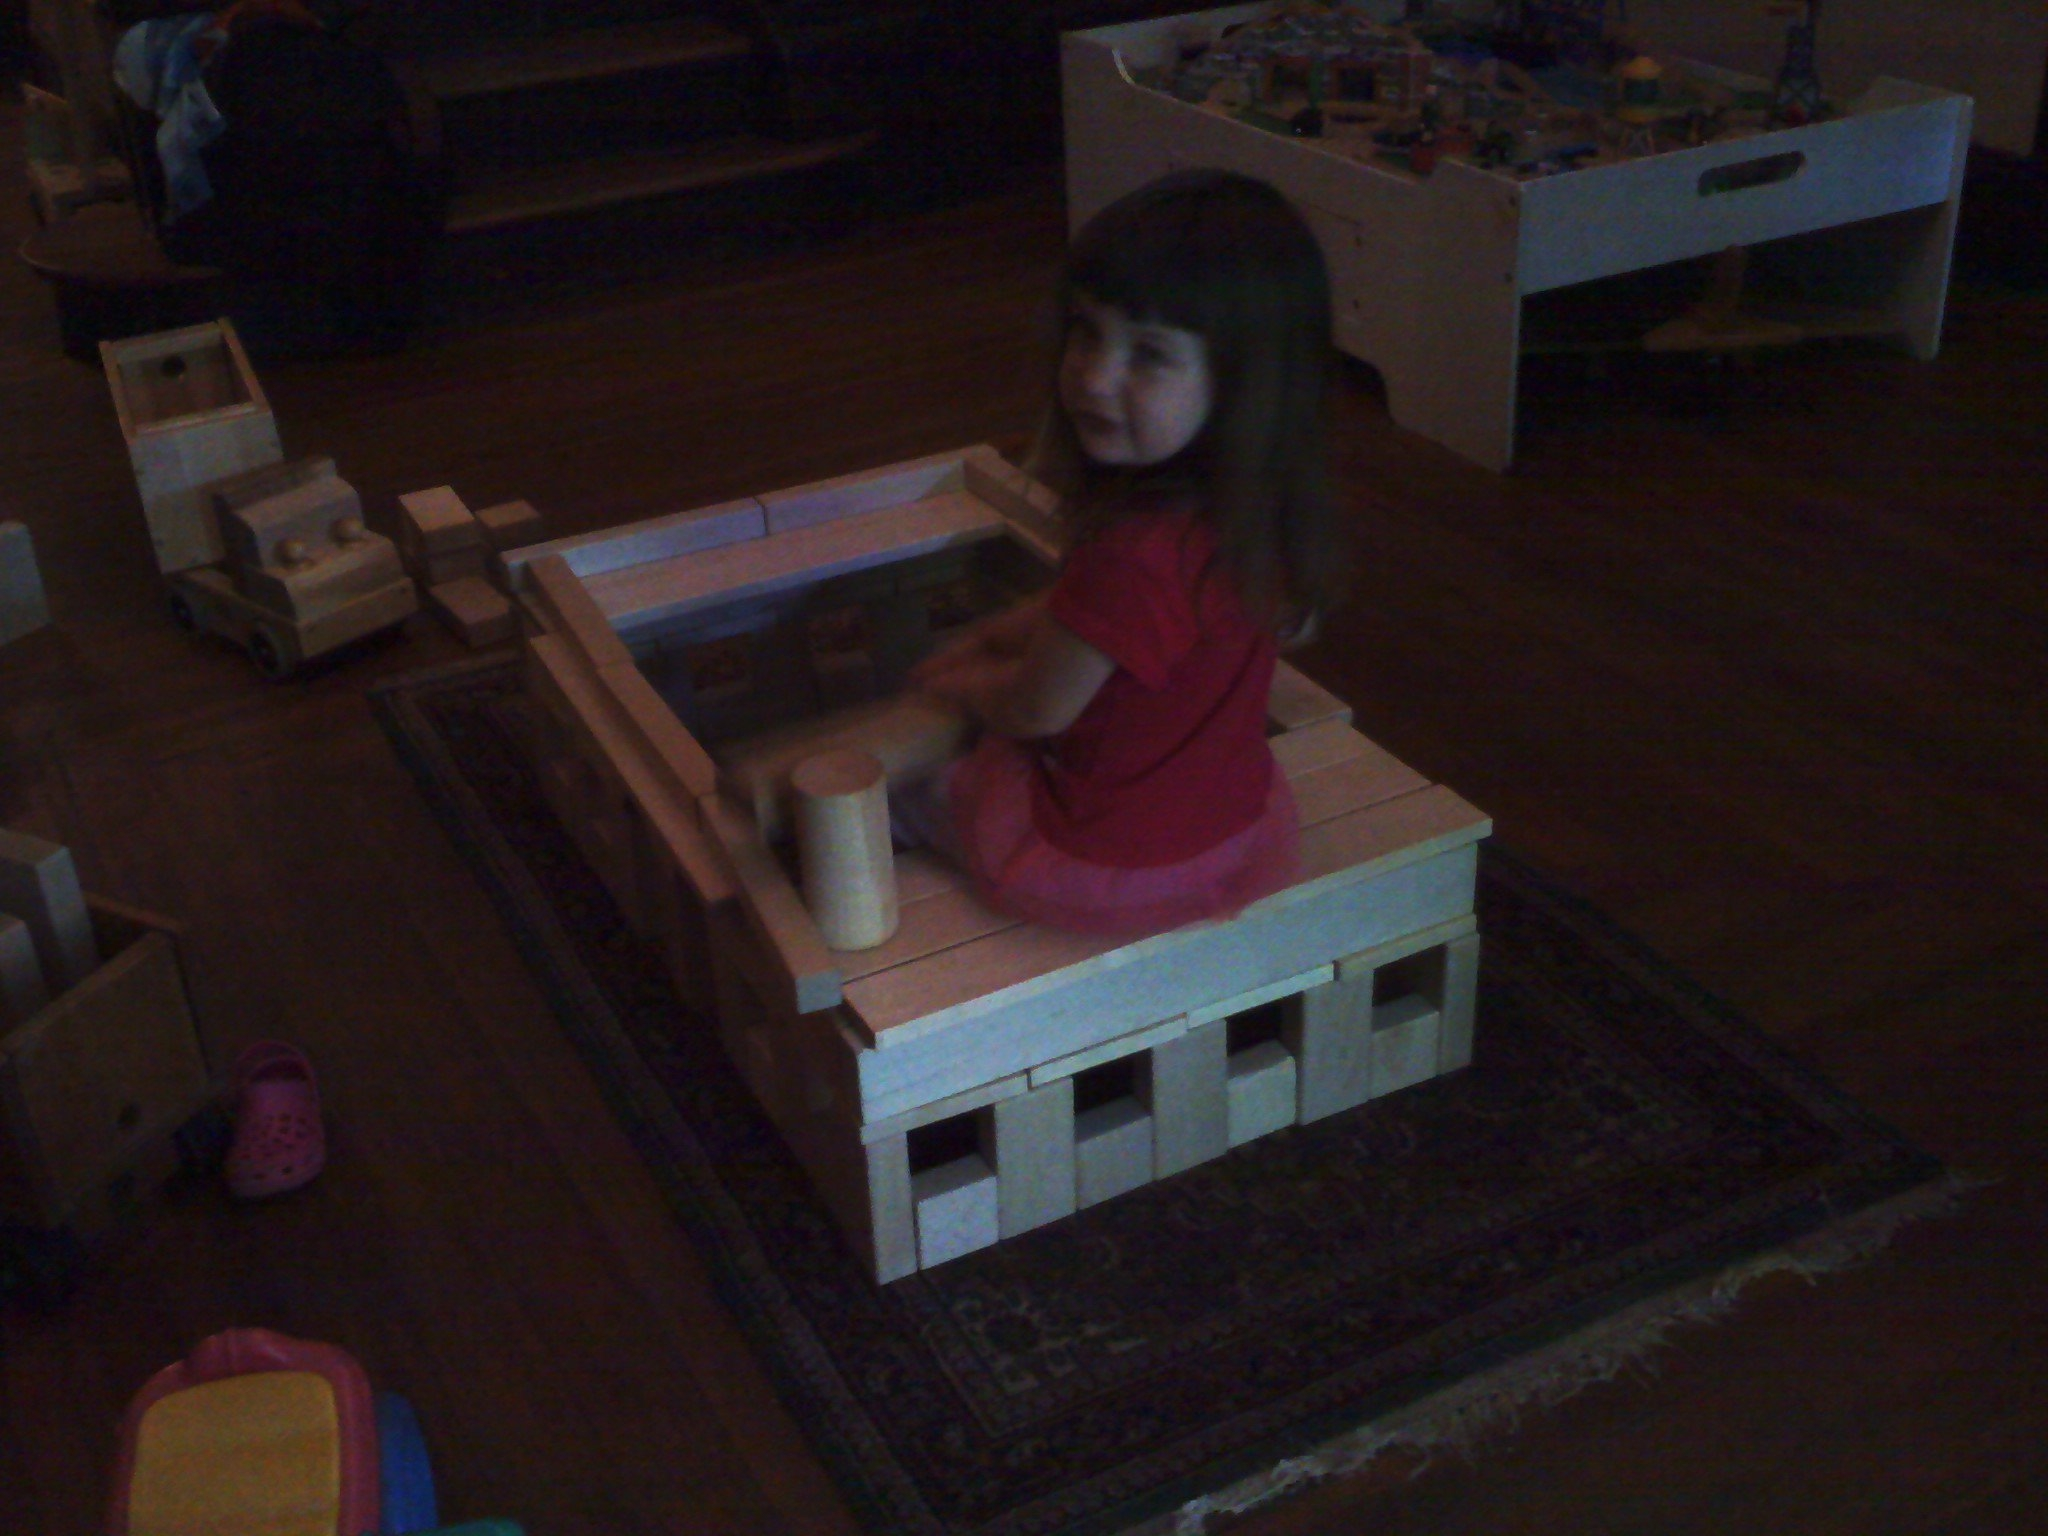 Photo of Livea playing with her hospital made from a CP61 Quarter Classroom Set of Hard Rock Maple Wooden Unit Blocks.